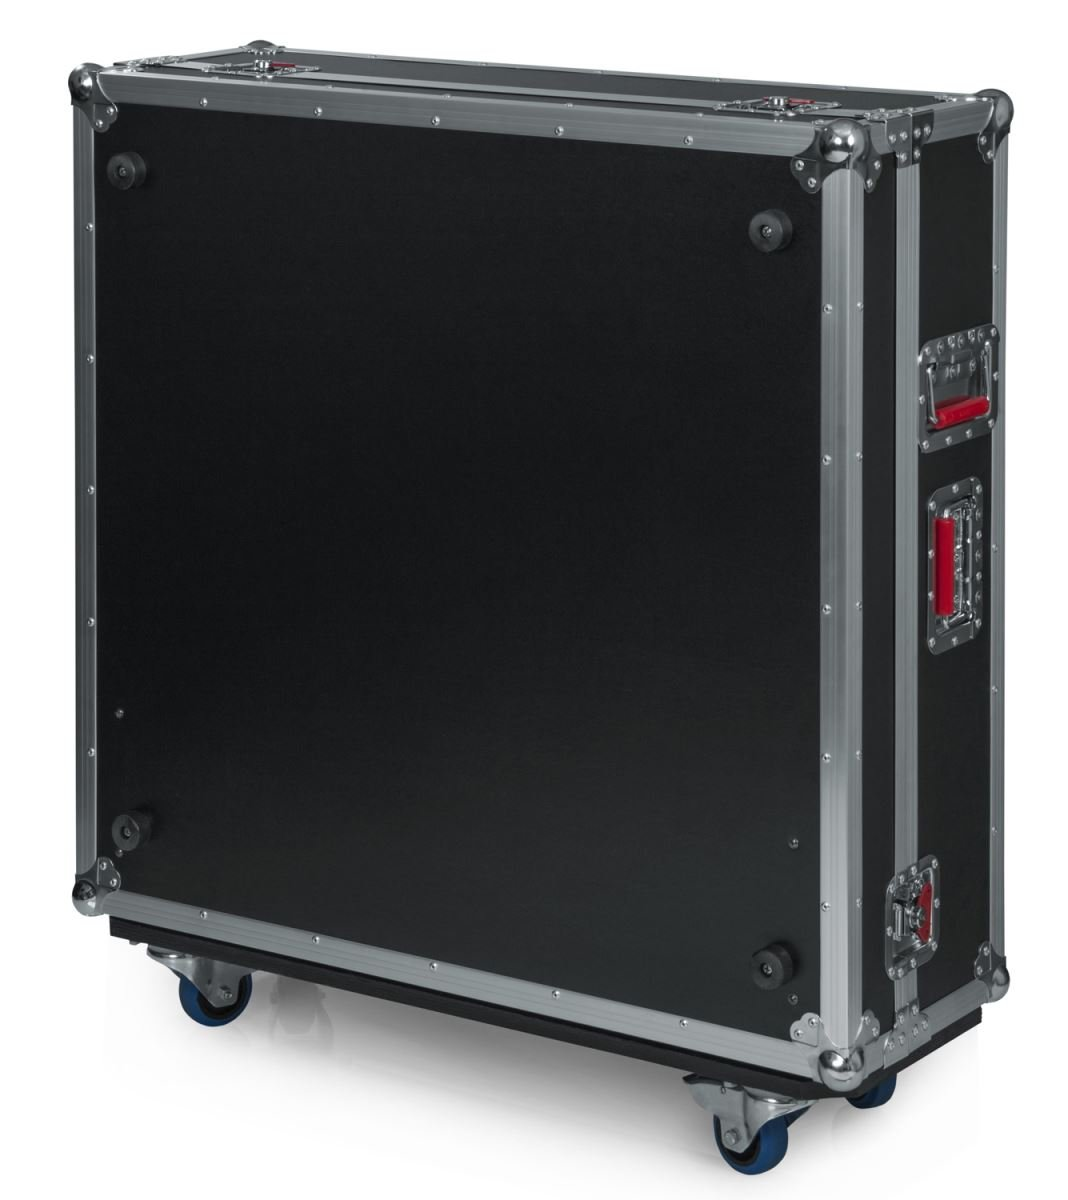 ATA Wood Flight Case for Yamaha TF5 Large Format Mixer